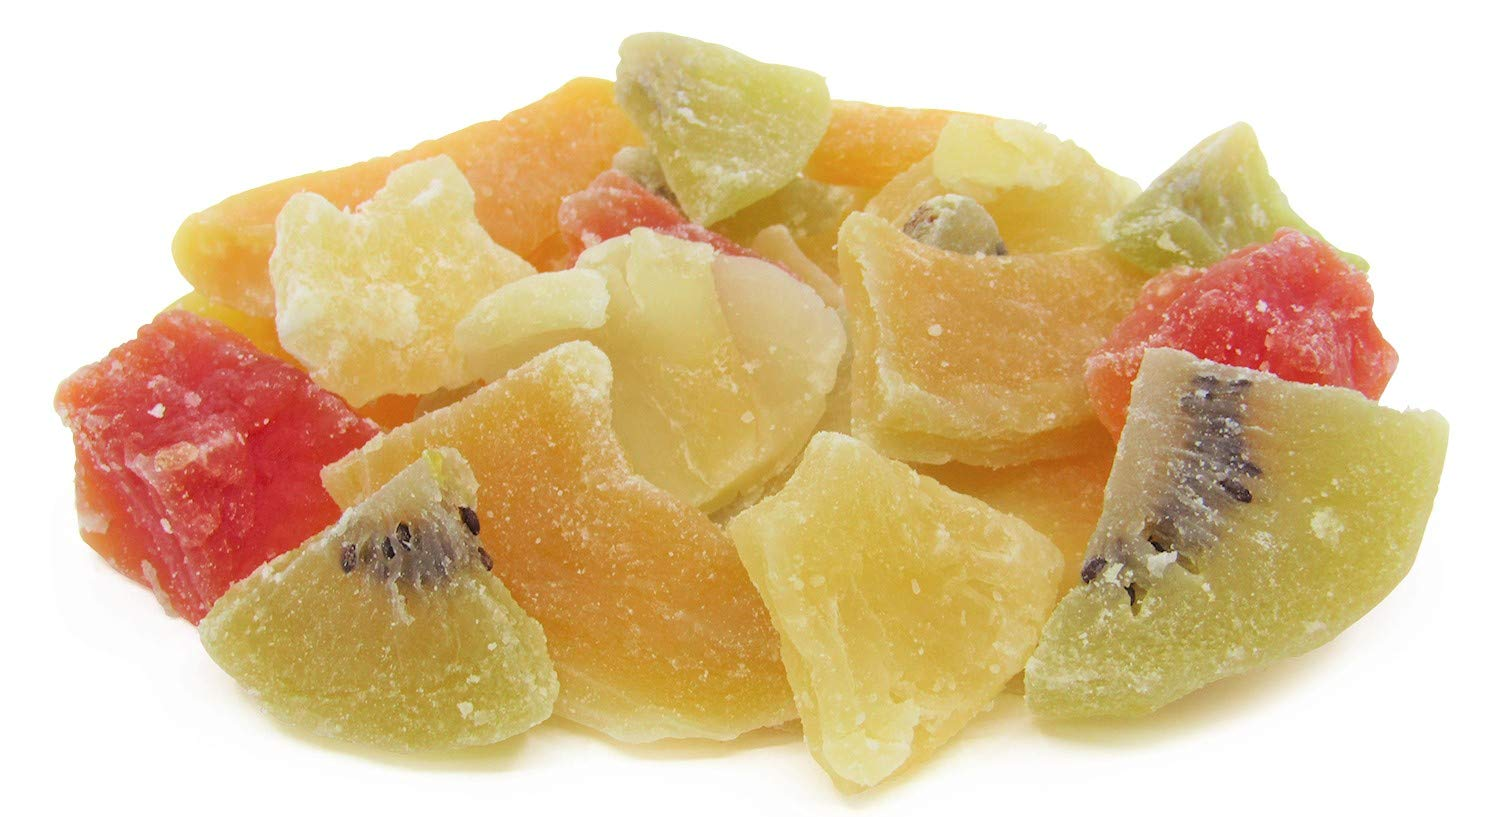 Rare Mixed Dried Fruit Chunks by It's Delish All Natu Free shipping anywhere in the nation – Perfect